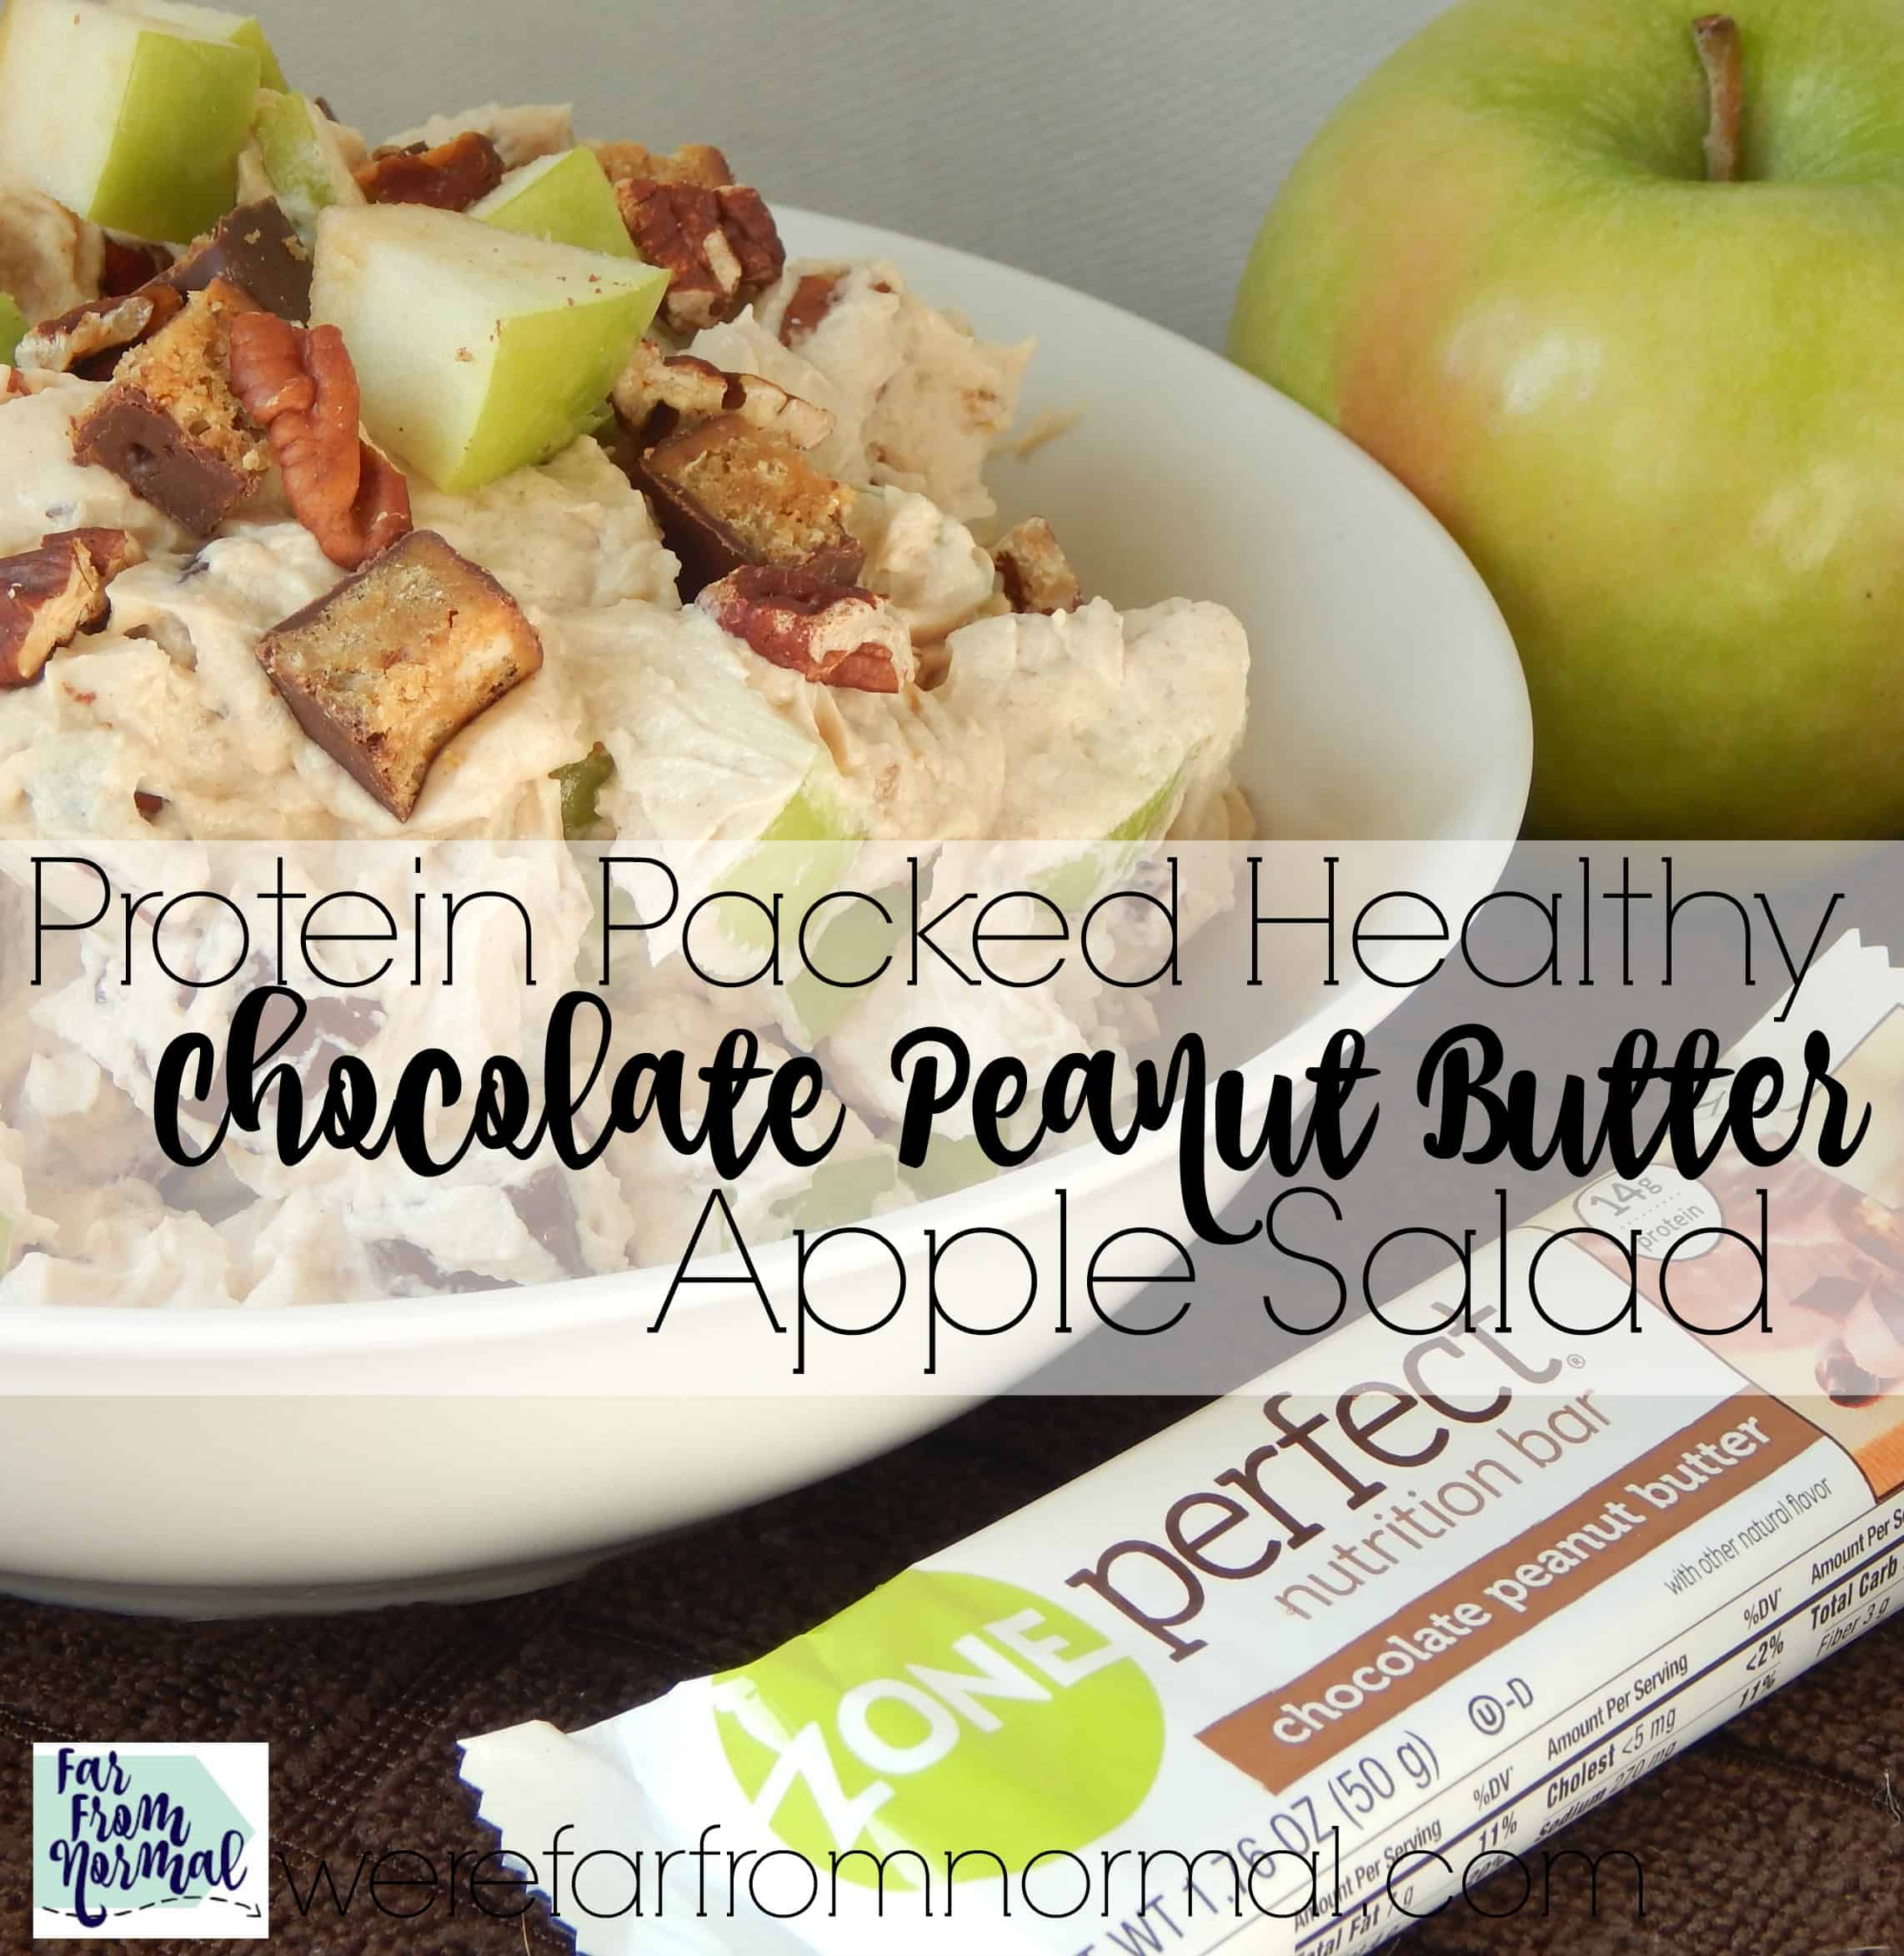 Protein Packed  Healthy Chocolate & Peanut Butter Apple Salad (the perfect afternoon treat!)